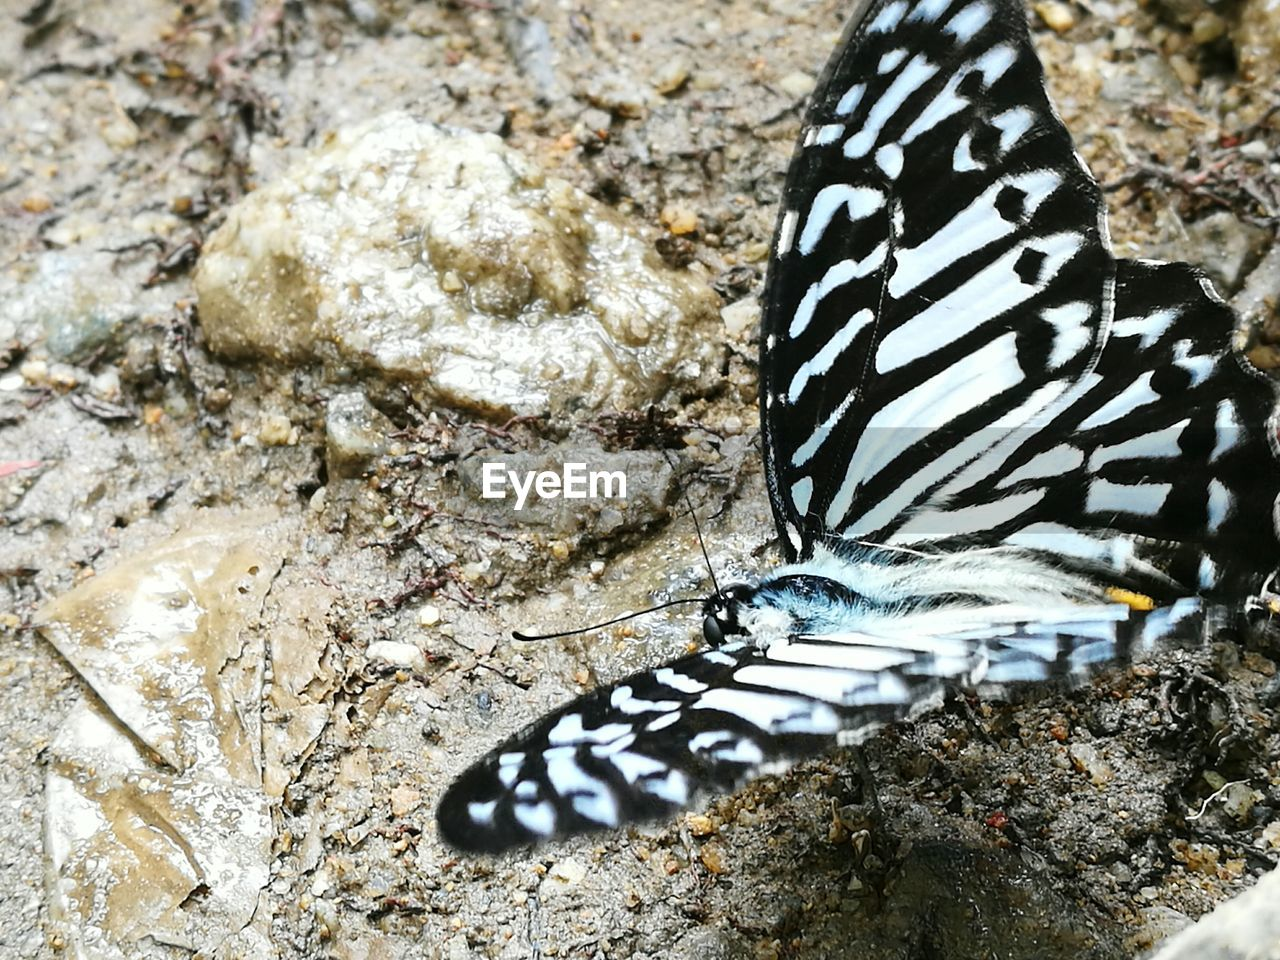 animals in the wild, animal wildlife, animal themes, animal, one animal, nature, rock, solid, no people, close-up, invertebrate, insect, rock - object, animal markings, day, beauty in nature, butterfly - insect, focus on foreground, animal wing, water, outdoors, butterfly, marine